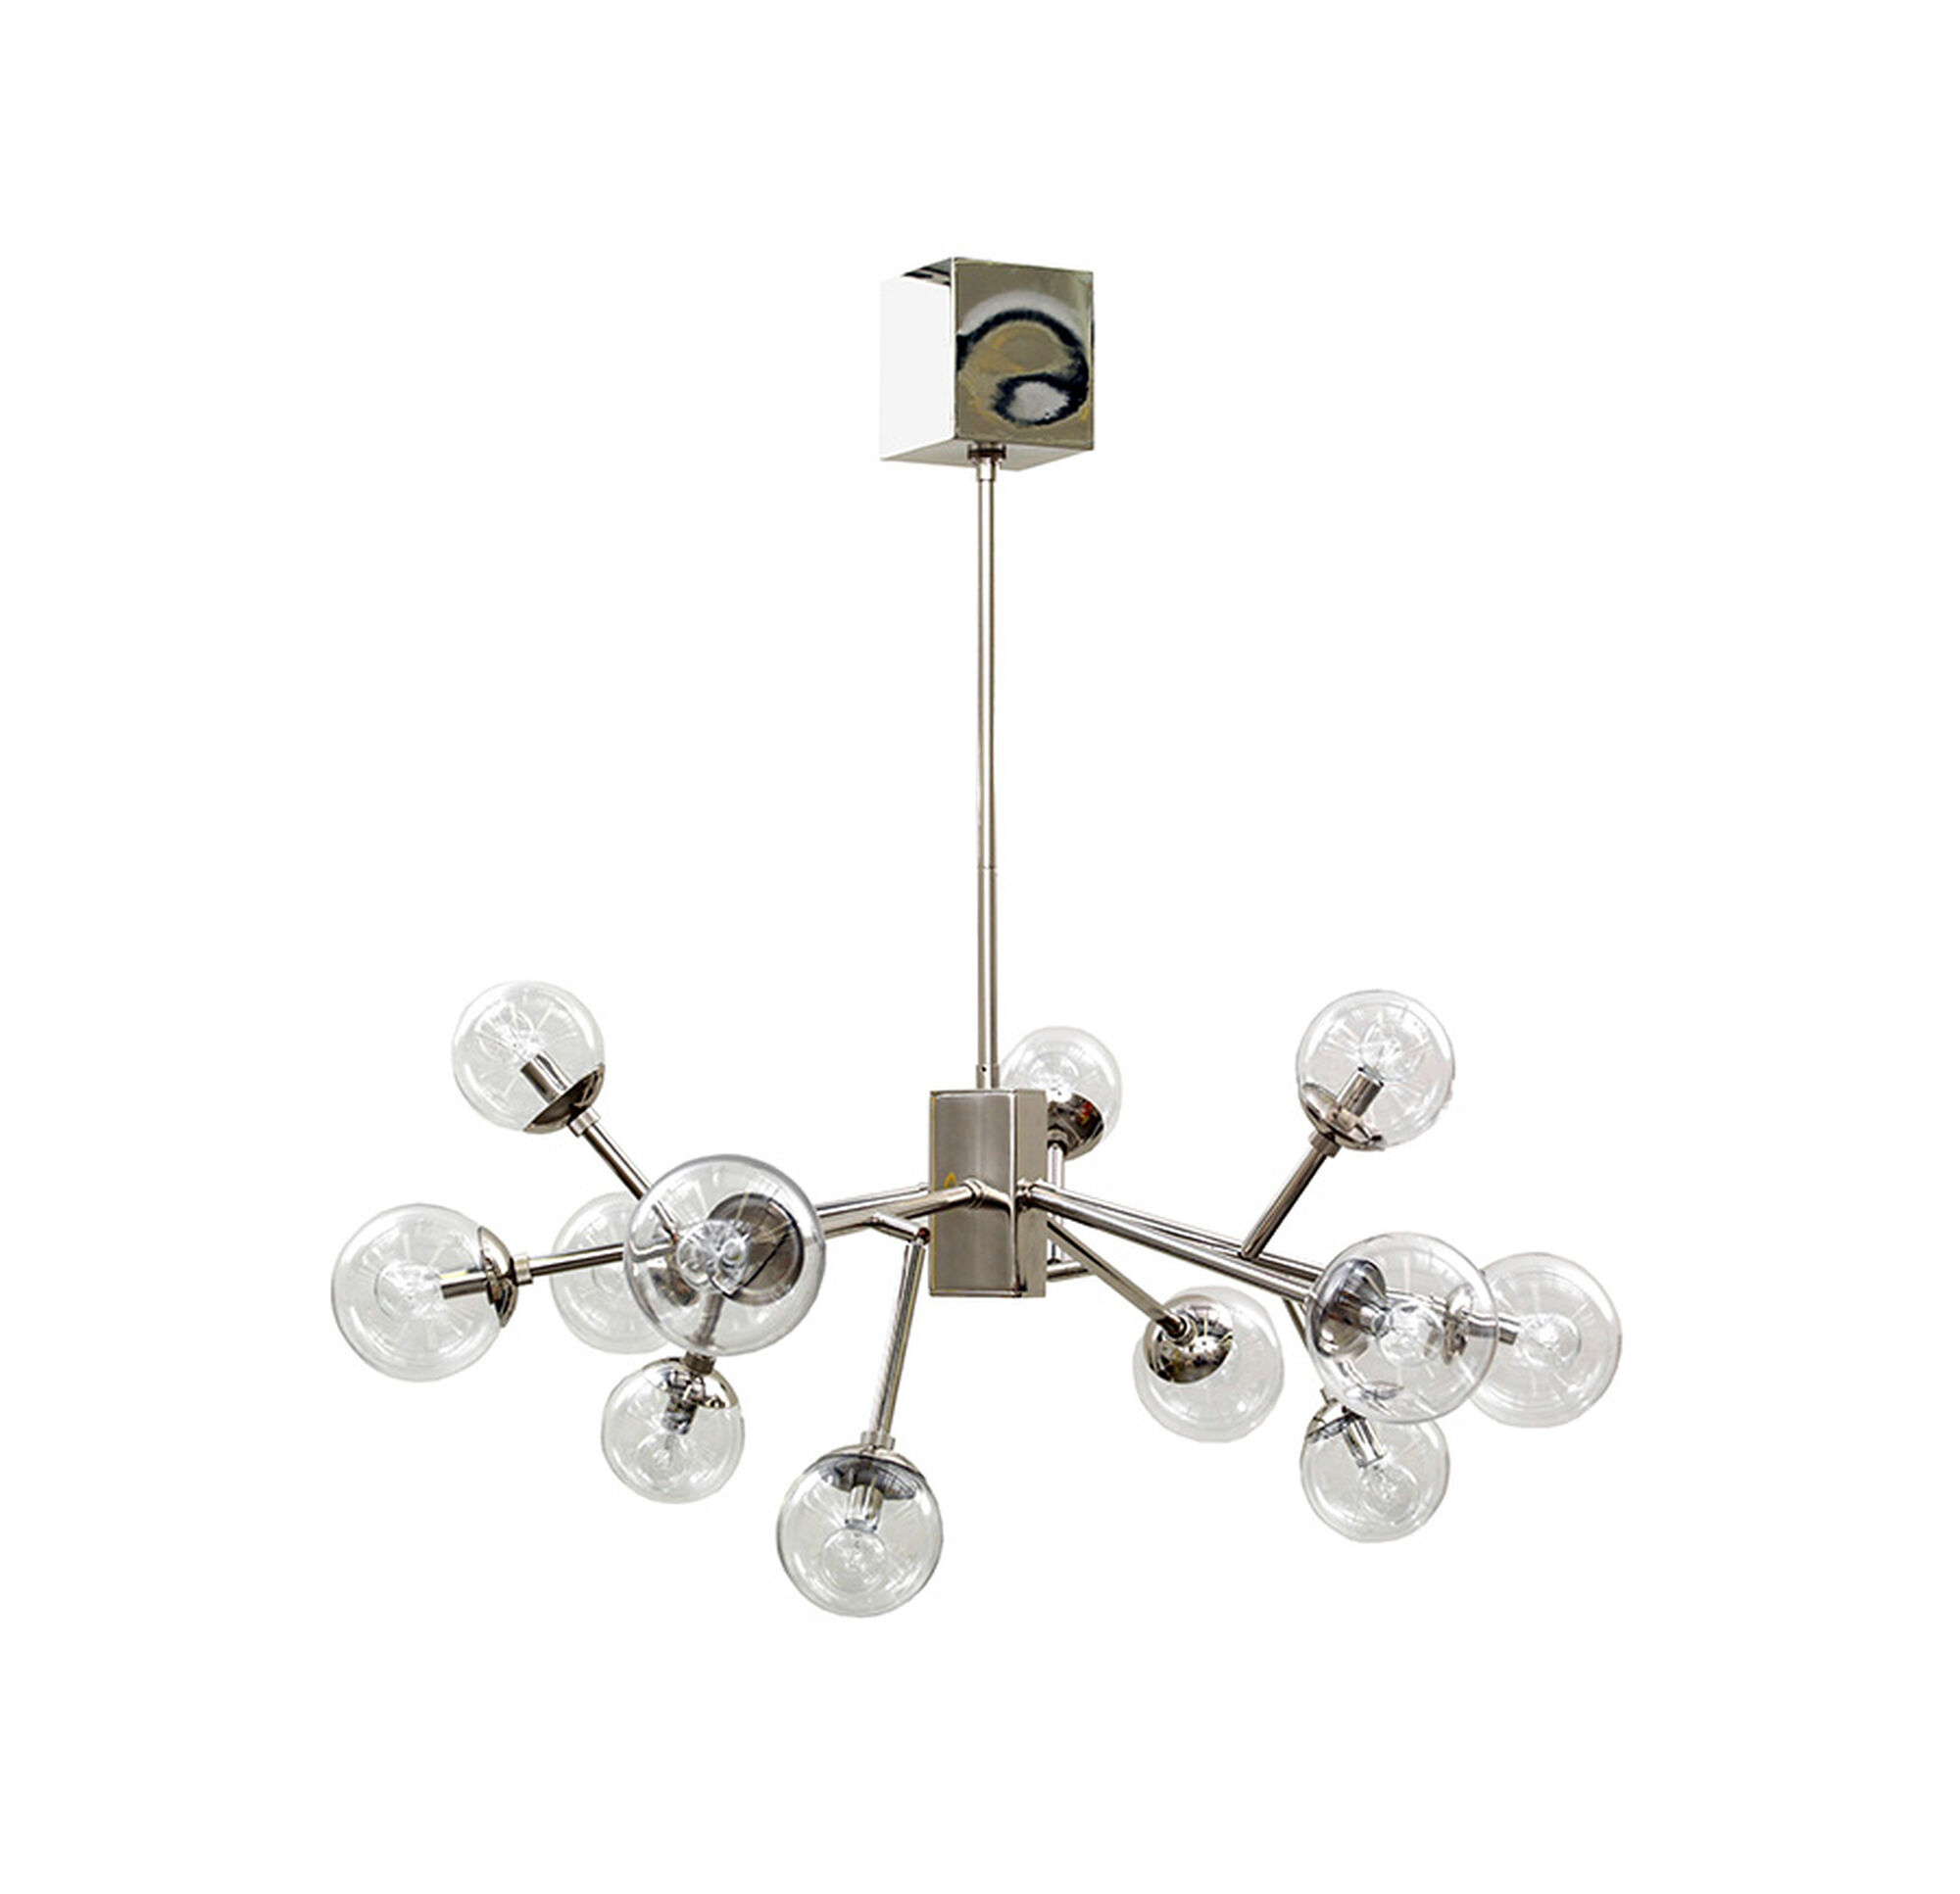 Savoy chandelier polished nickel with clear glass arubaitofo Image collections